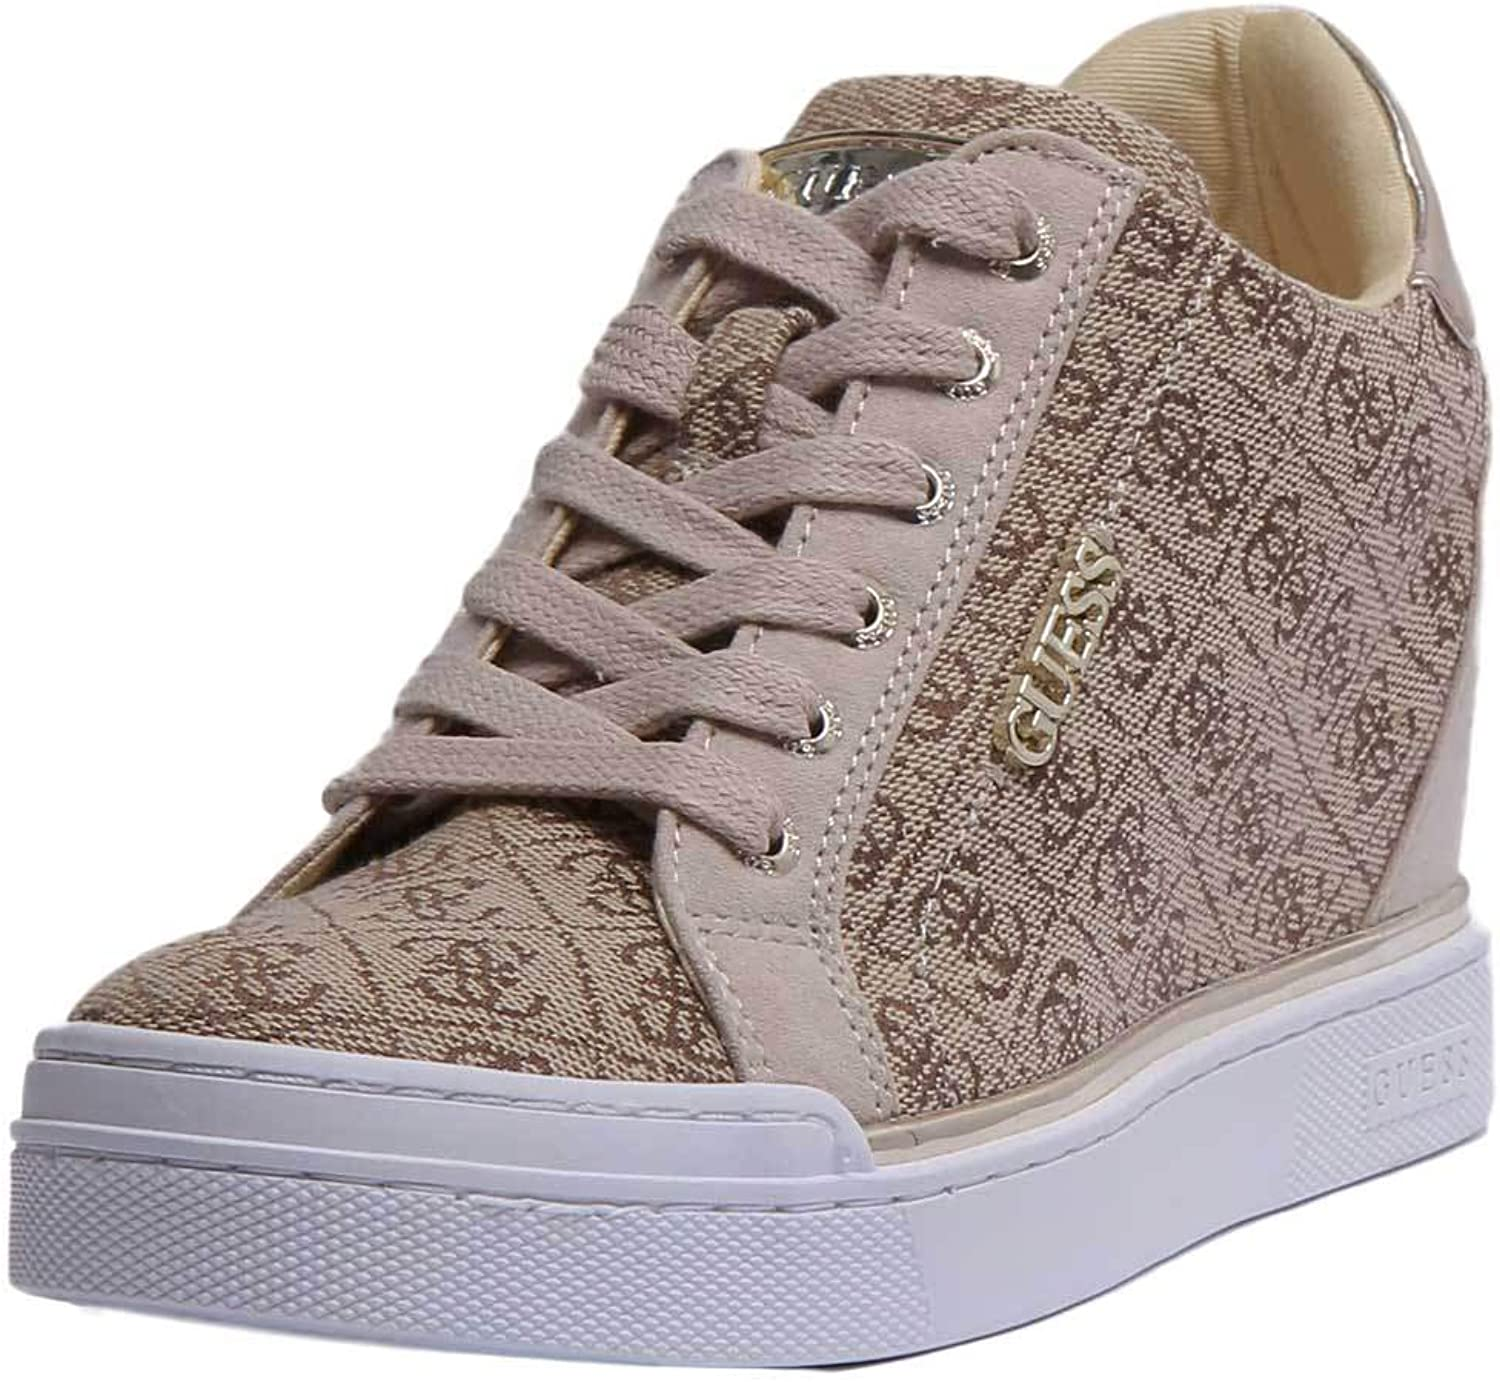 GUESS Fl5Fw2Fal12 Womens Synthetic Trainer in Beige